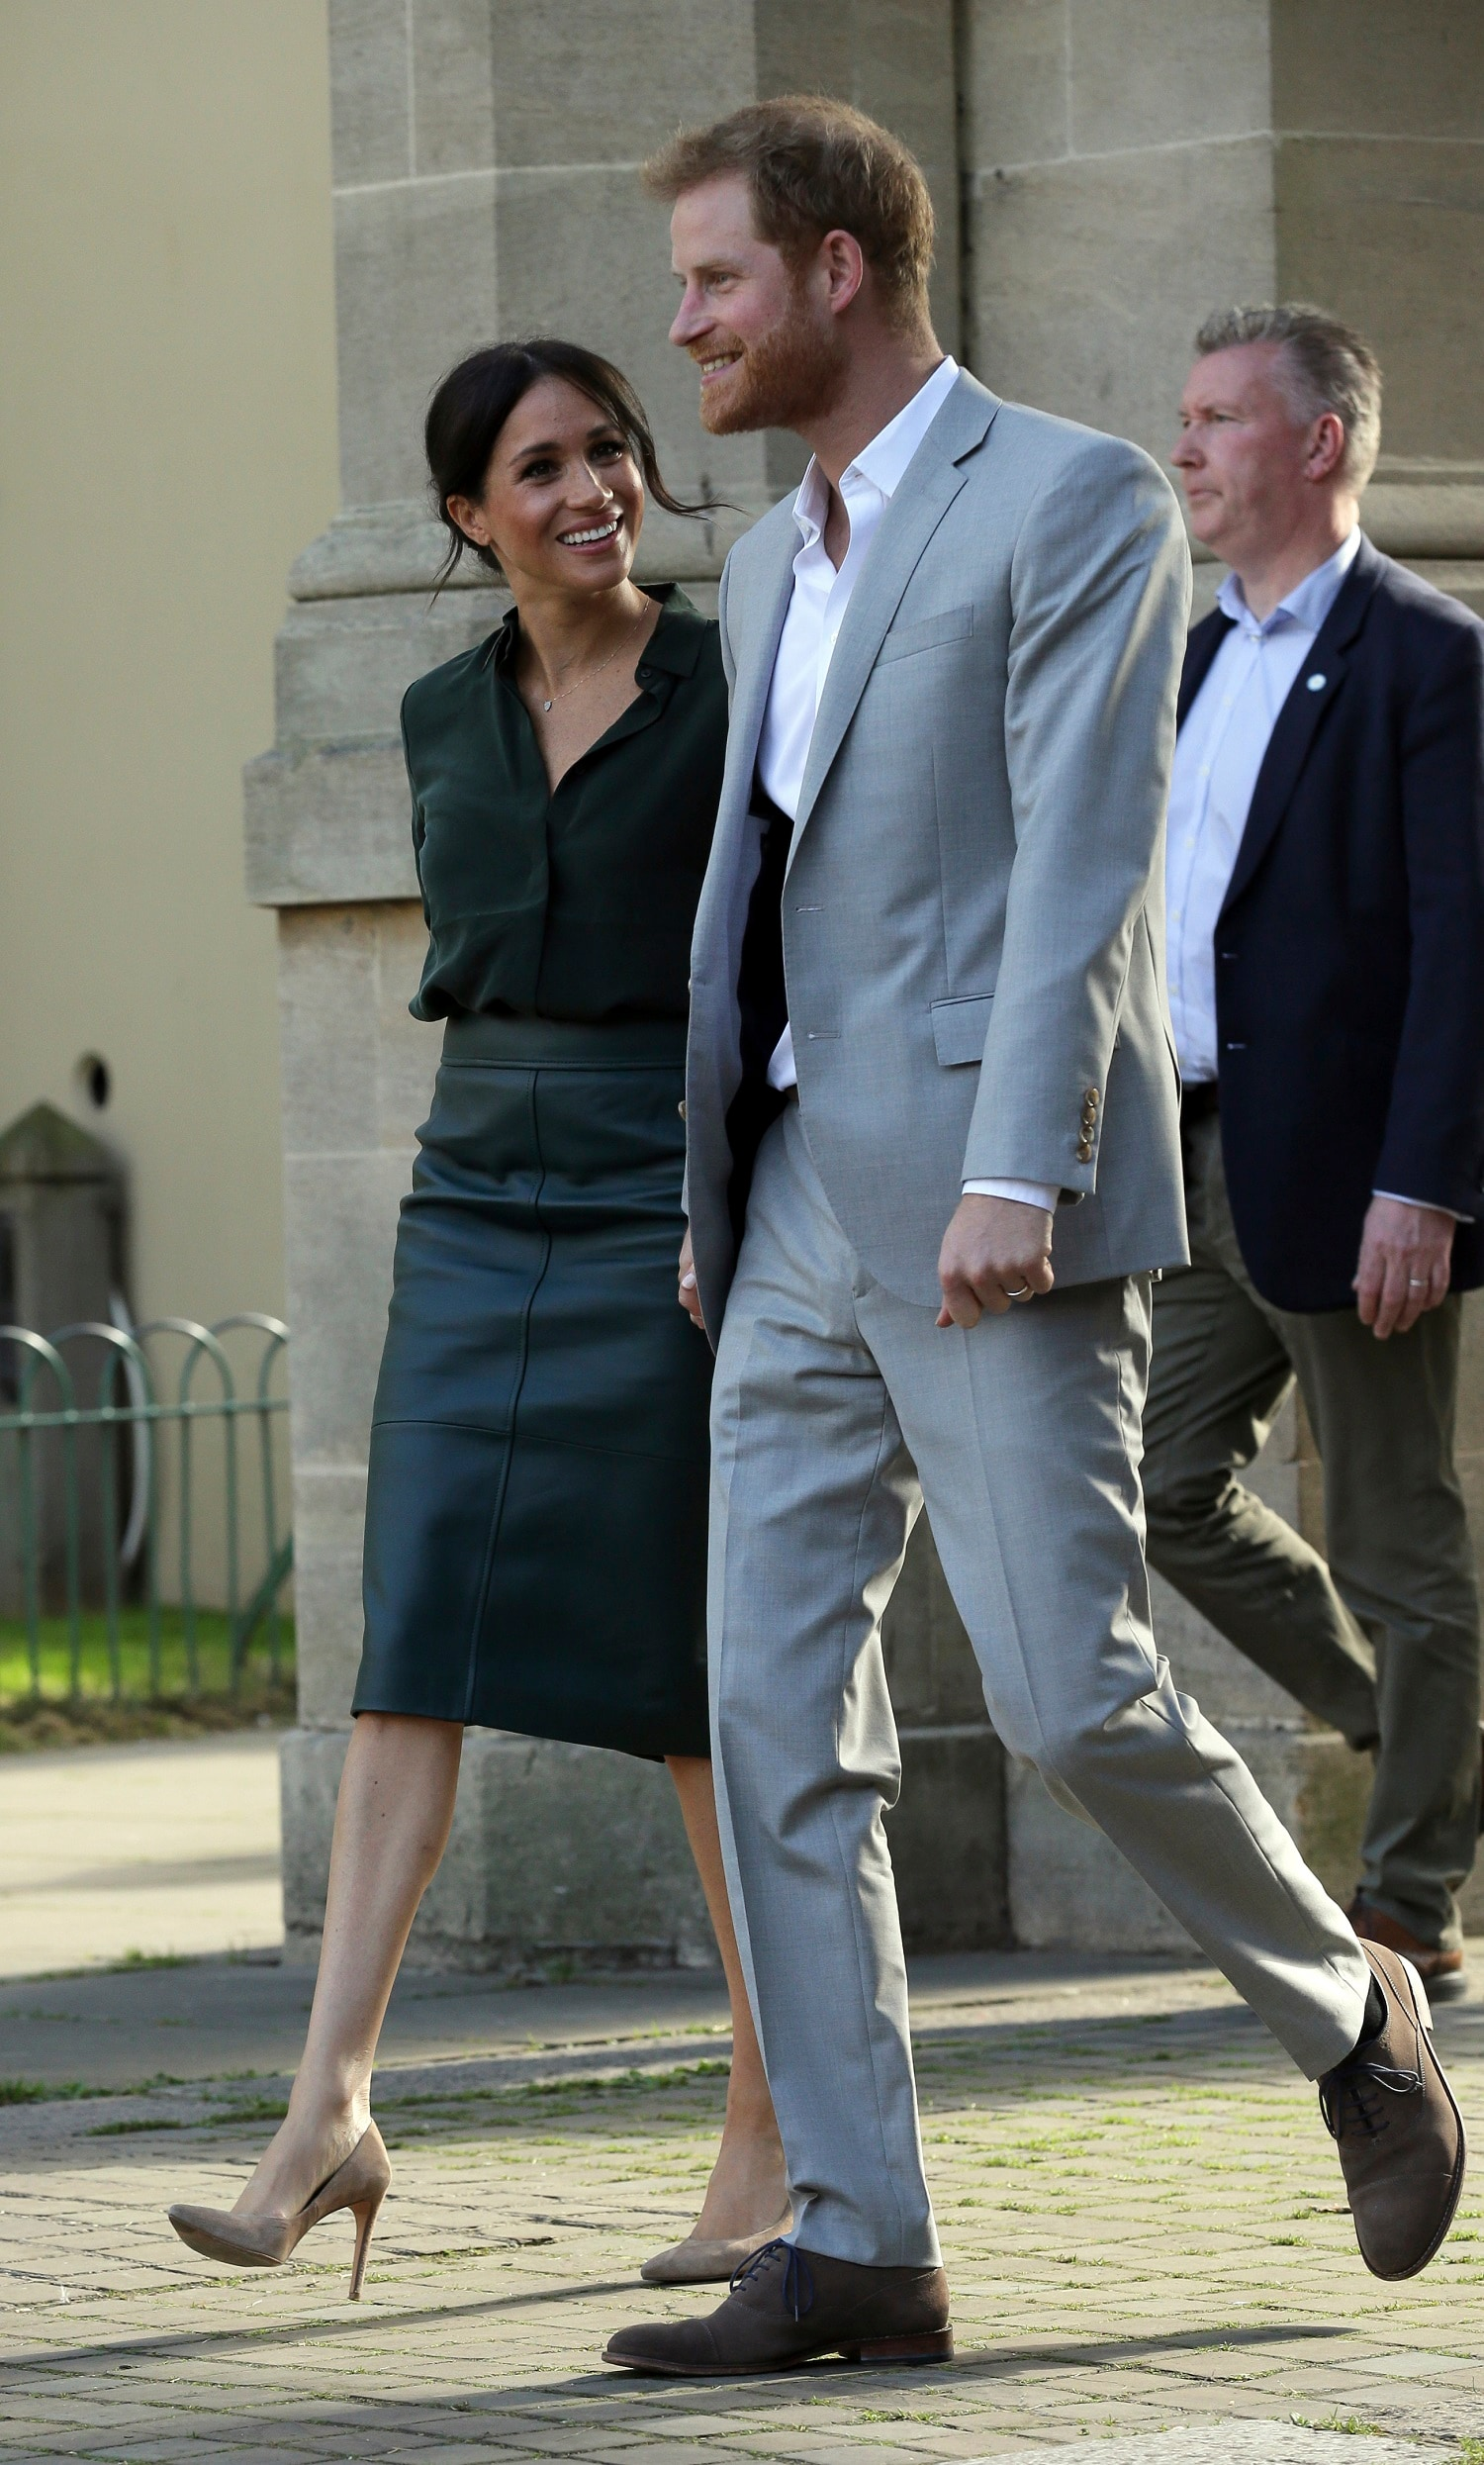 FILE - In this Wednesday, Oct. 3, 2018 file photo, Britain's Prince Harry, right, and Meghan, Duchess of Sussex visit the Pavilion Building in Brighton, England. Sunday, May 19, 2019 marks the first wedding anniversary of the besotted couple. (AP Photo/Tim Ireland, Pool, File)